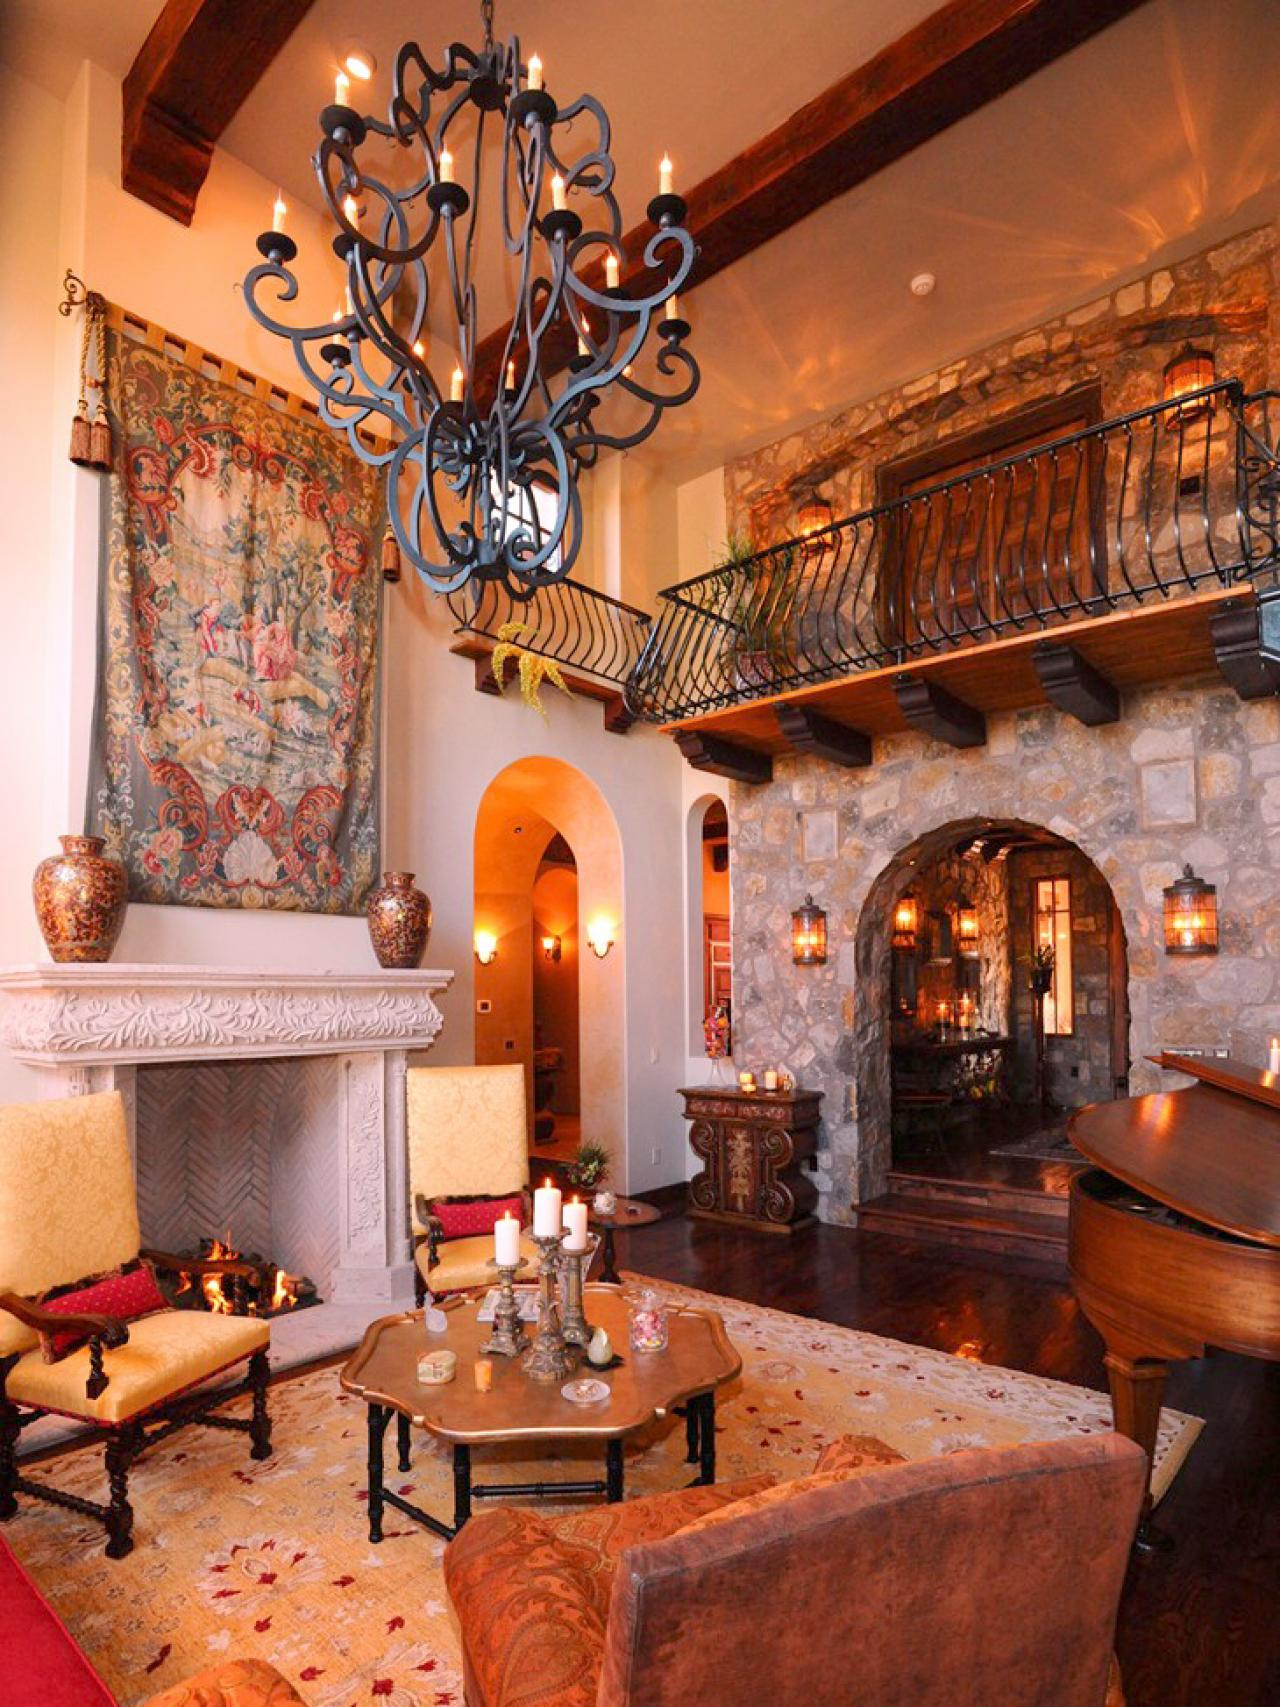 spanish style living room furniture home interior ideas design homesfeed stone combination of with awesome chandelier white fireplace small table rug